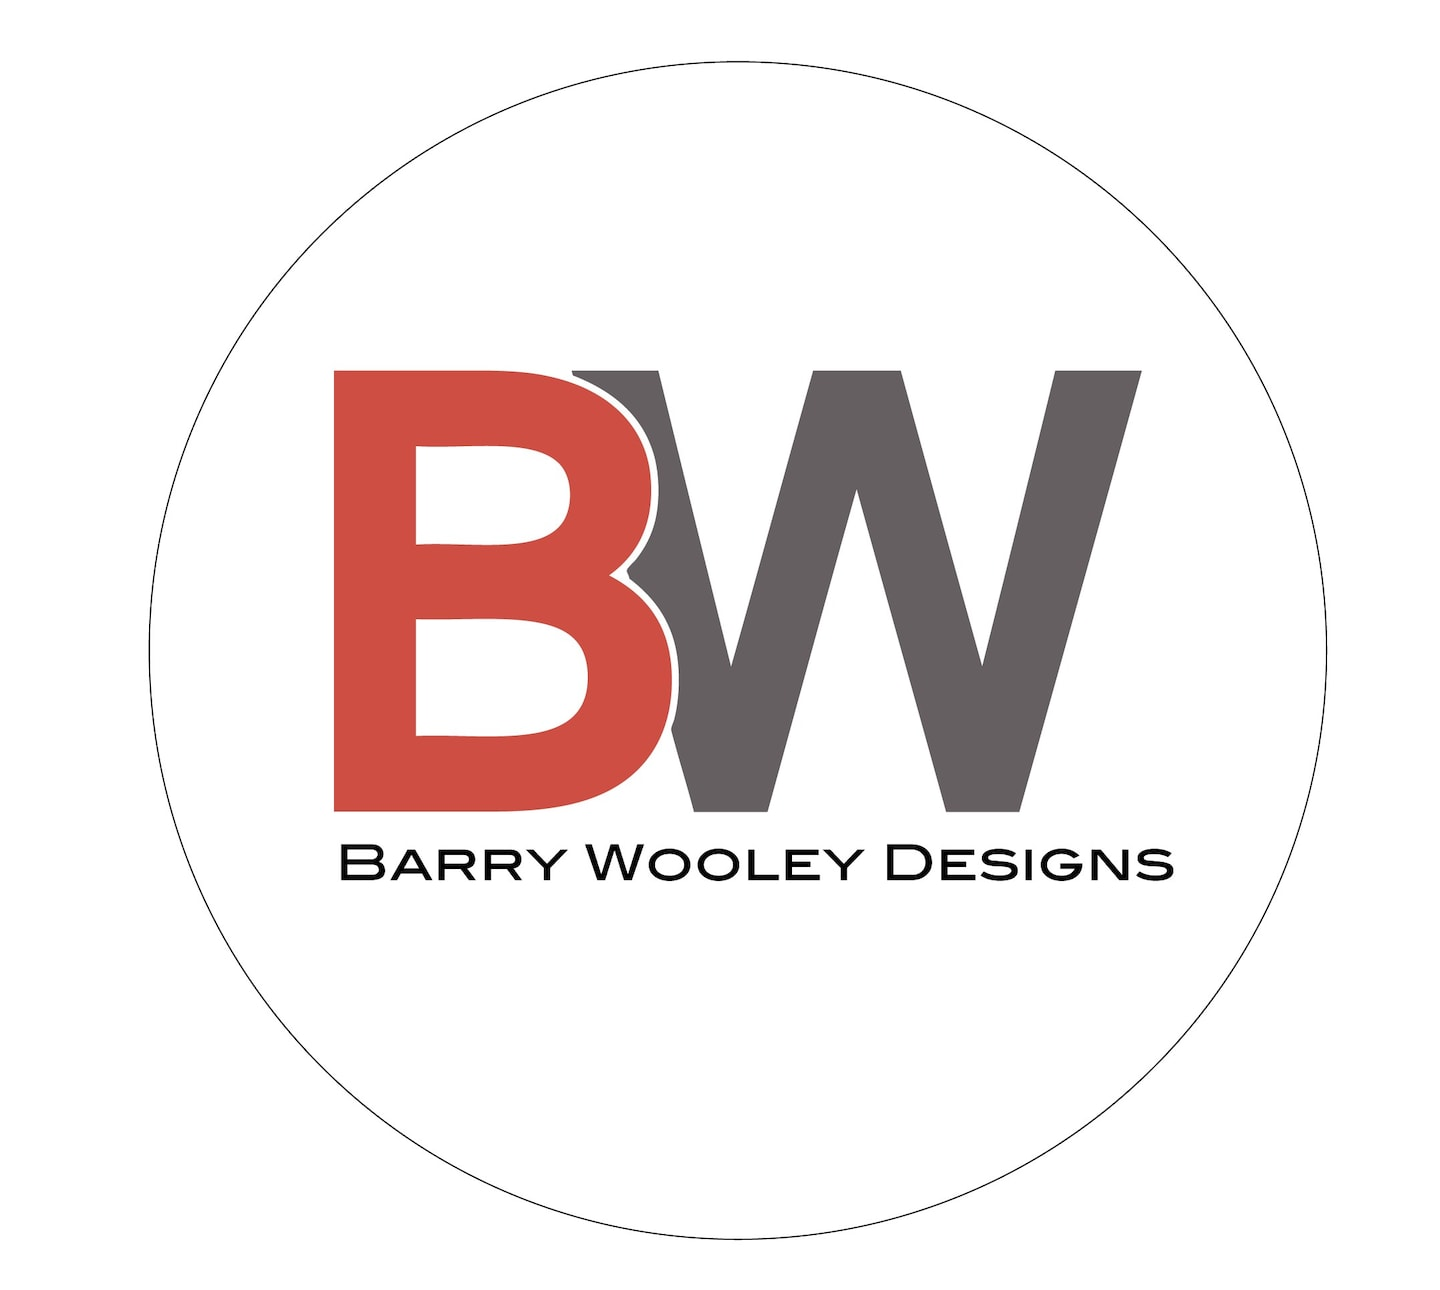 Barry Wooley Designs